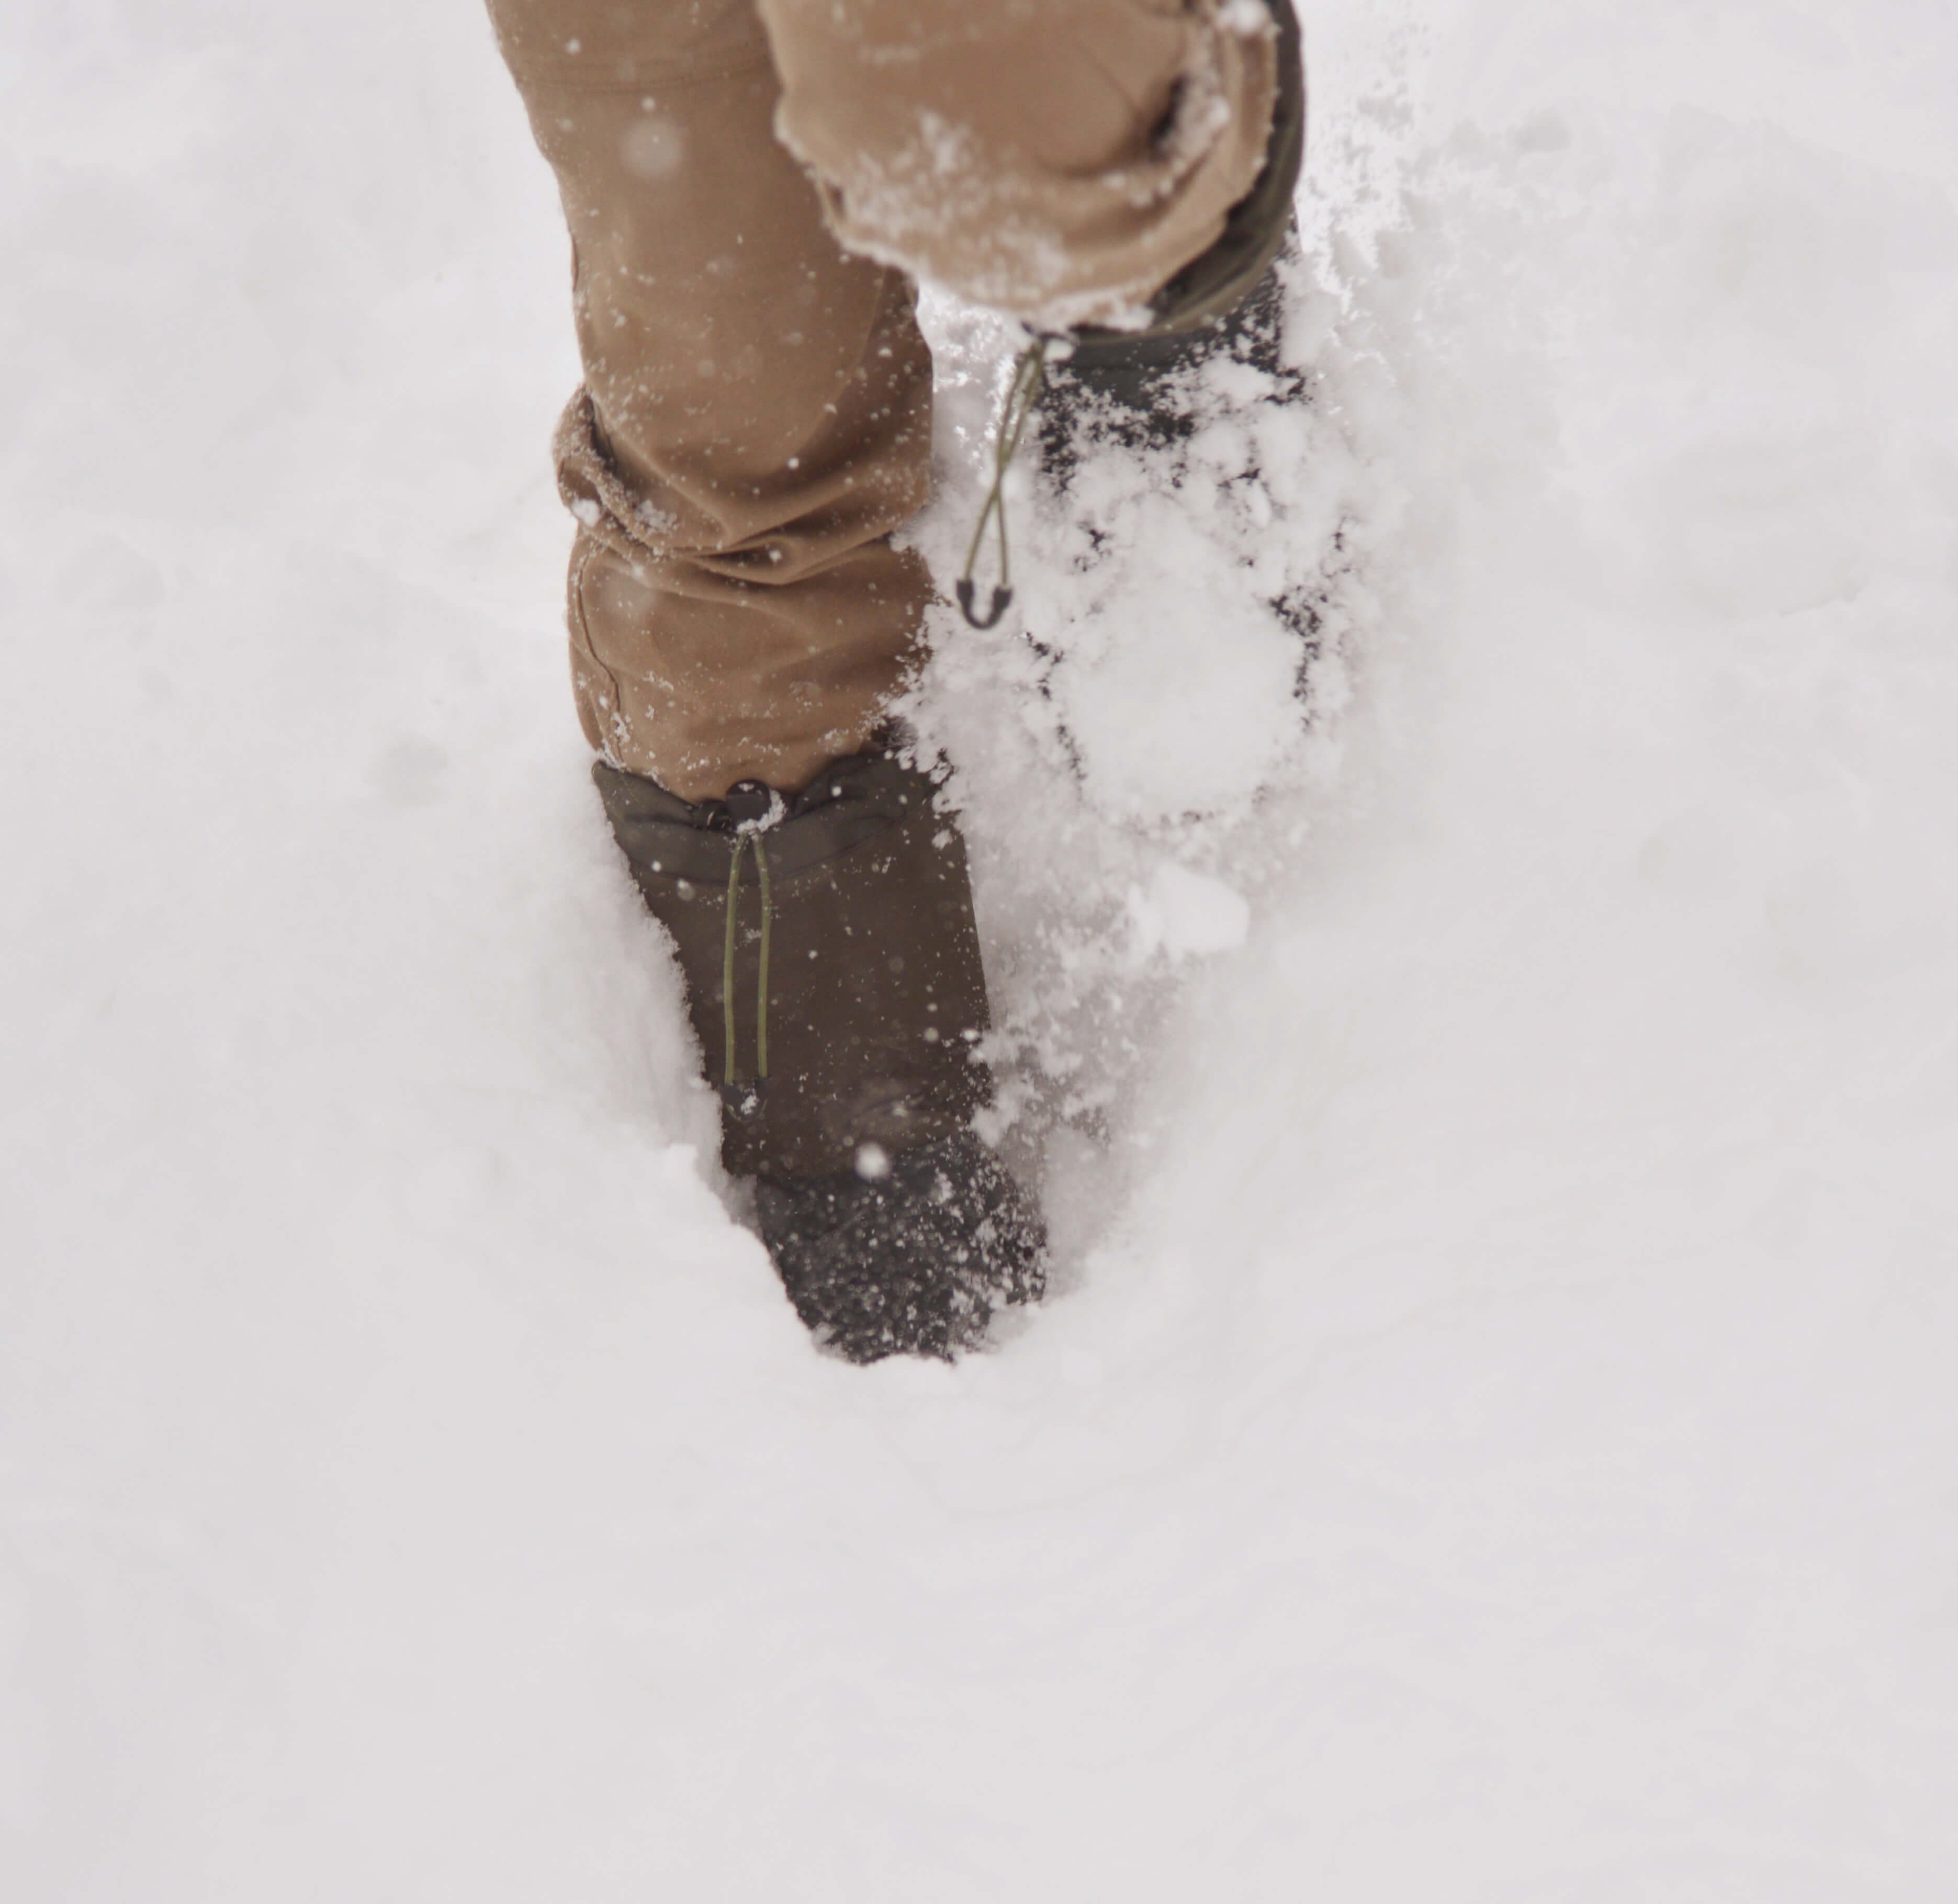 Walking through snow with the Kamik Coldcreek boots and Stio pants